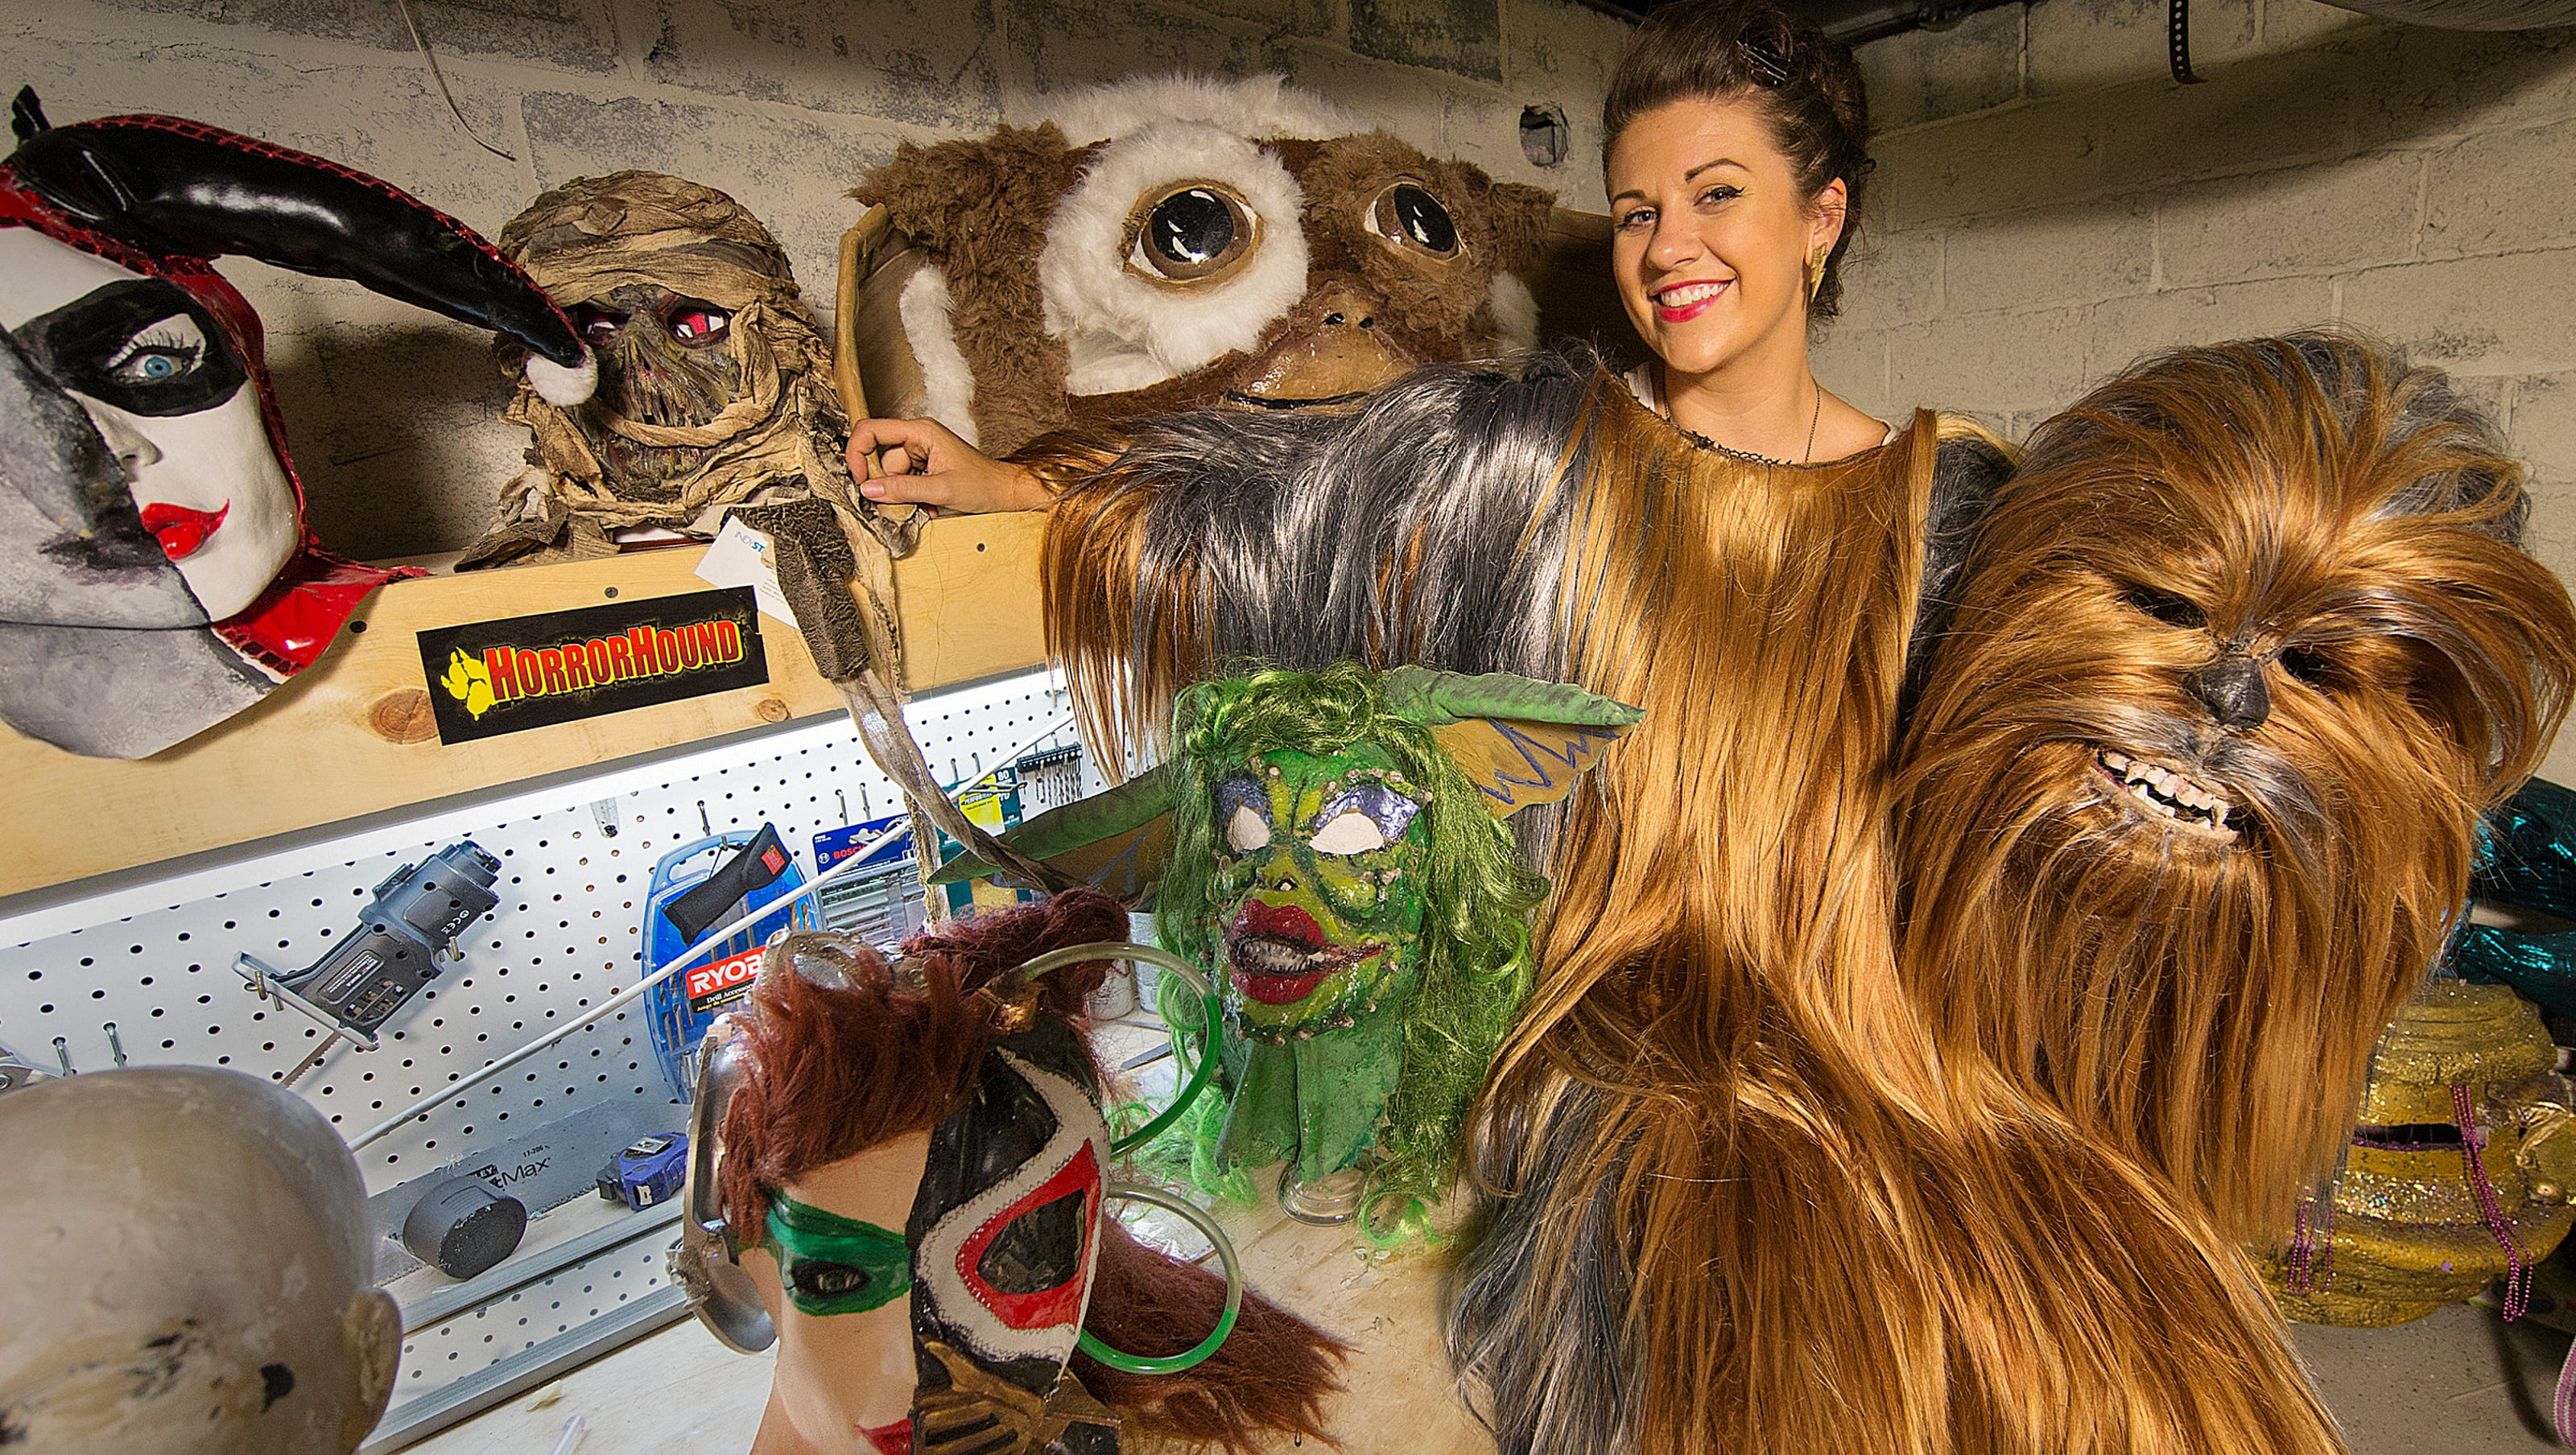 indy costume maker creates everything from stripper clothes to chewbacca